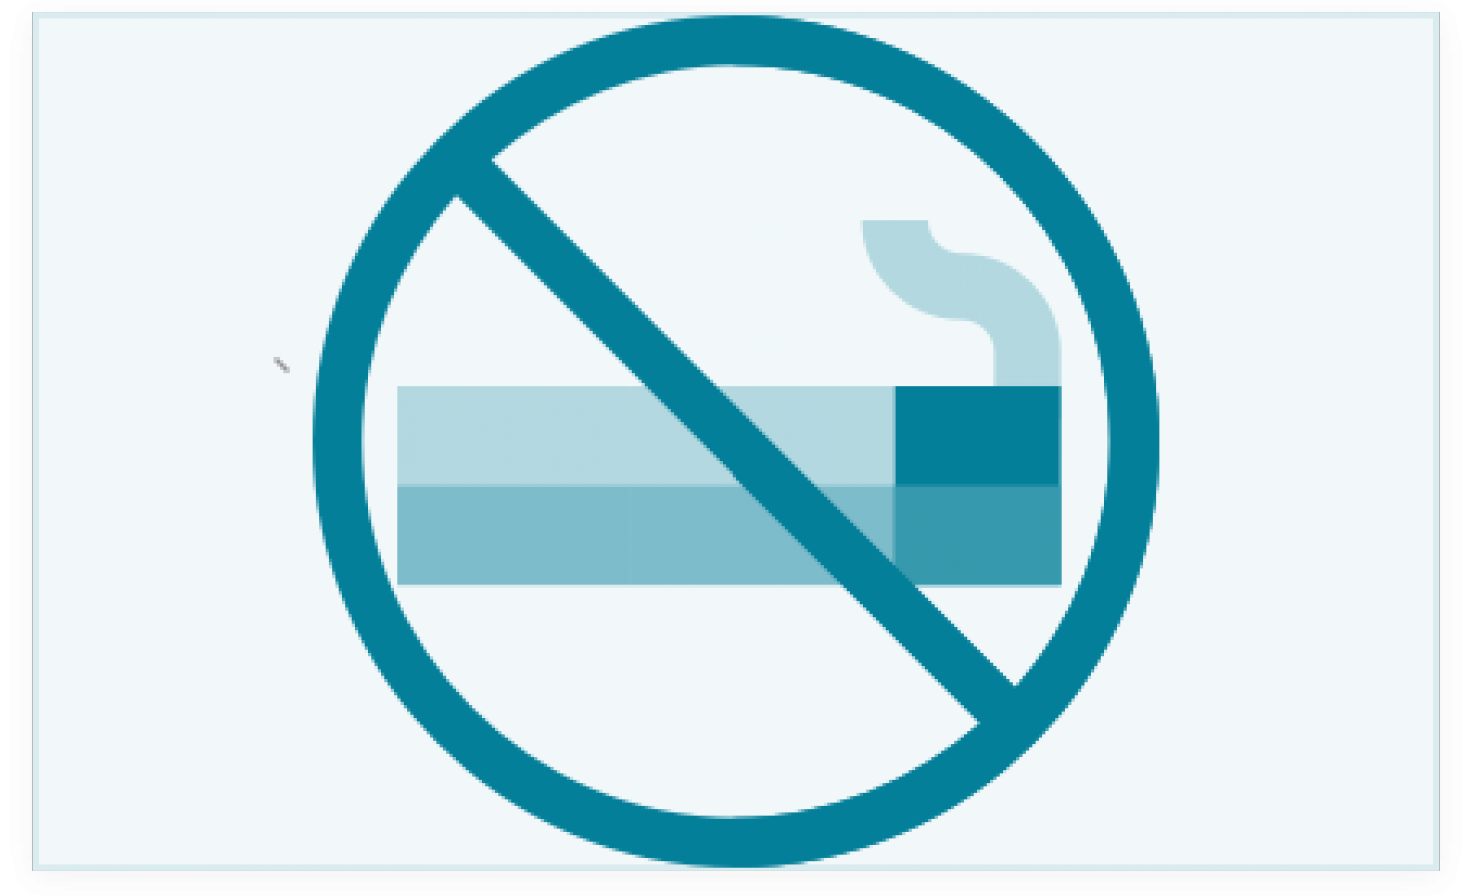 Diagram of no smoking symbol